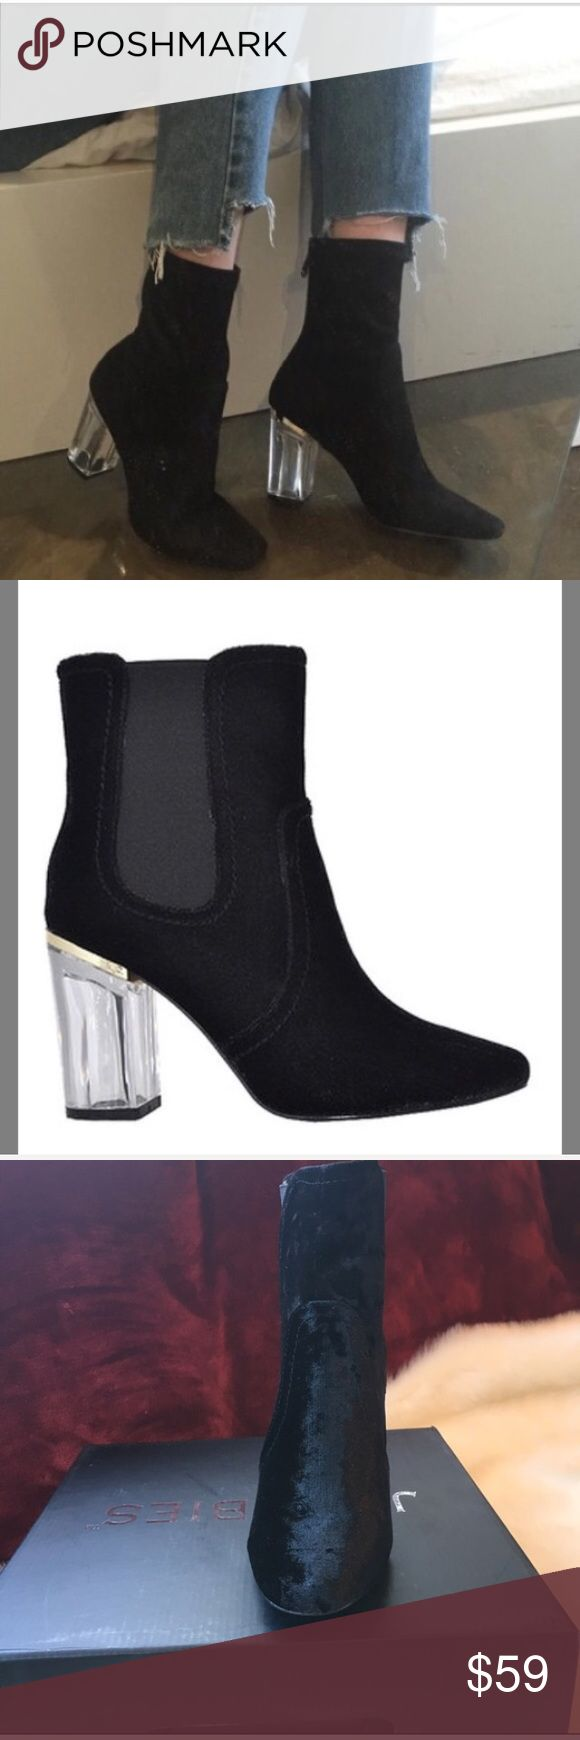 """💋Velvet Clear Heel Ankle Boot Bootie 💋Brand new in box  💋Feature memory foam insole and 4"""" heel.  💋Material: Man Made Velvet  💋Sizing: These are size 8  ✅Bundle 3 items and save 15% (Maybe a bikini and some shades?)  ⭐️⭐️⭐️⭐️⭐️Rating ⛔️Trades ✈️Ships same day if ordered by 10:00 PST Shoes Ankle Boots & Booties"""